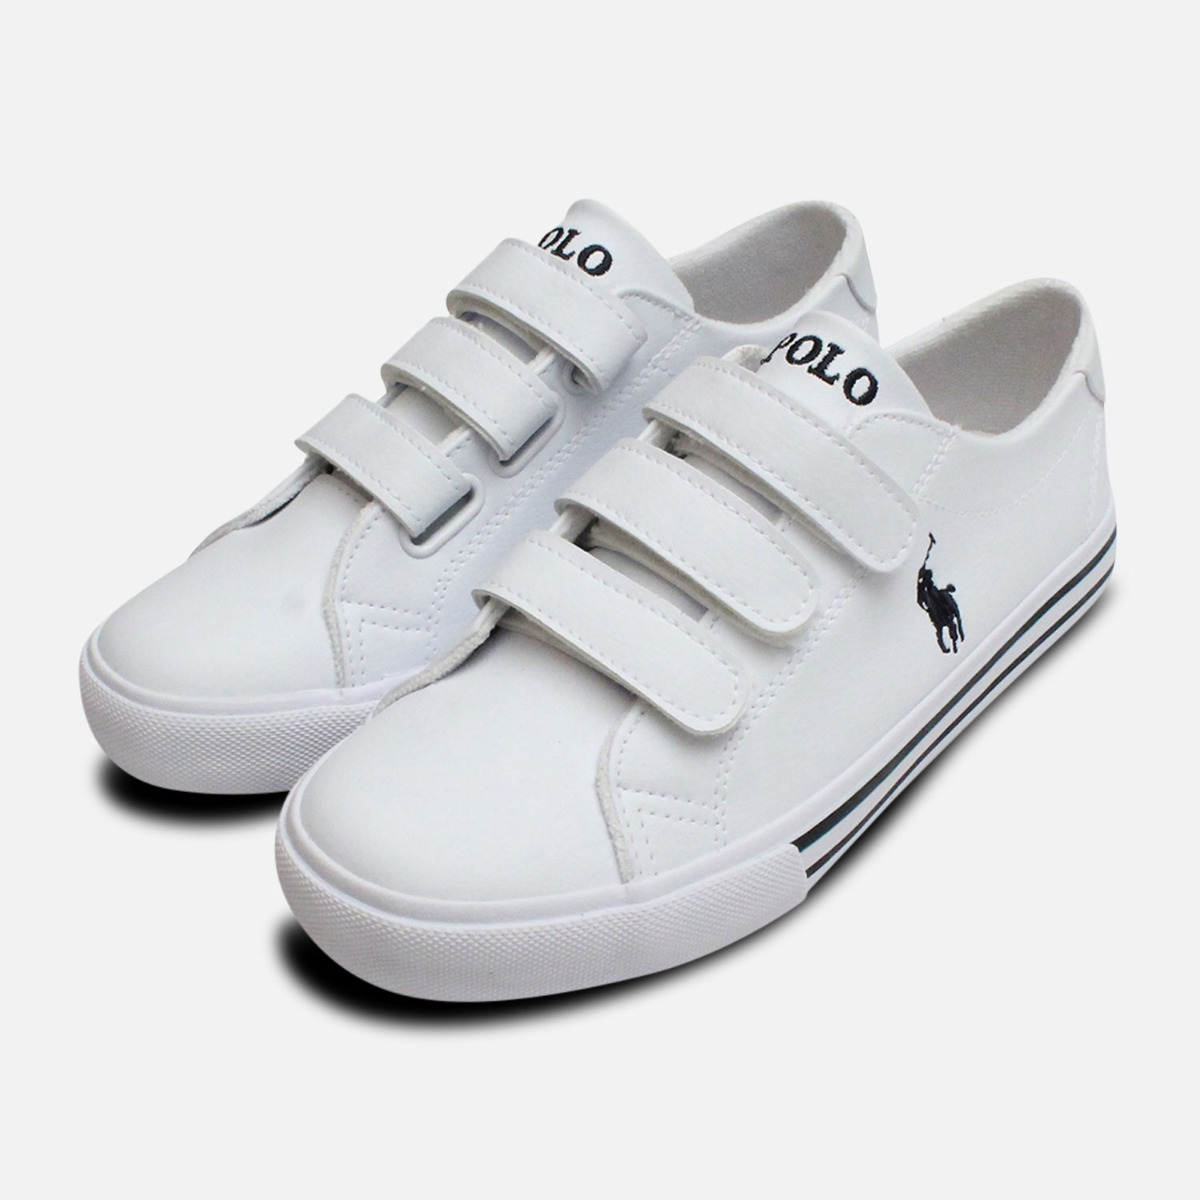 93ee5fd1 Details about White Ralph Lauren Polo Slater EZ Kids Shoes